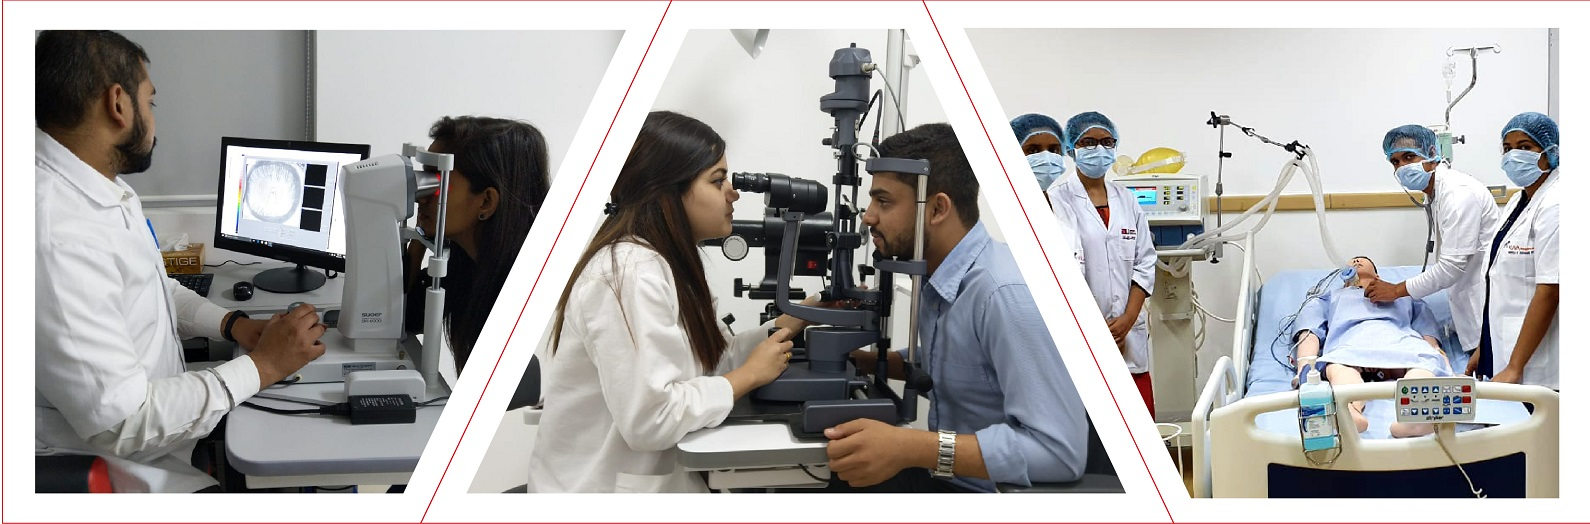 B.Sc. in Clinical Research and Health Care Management